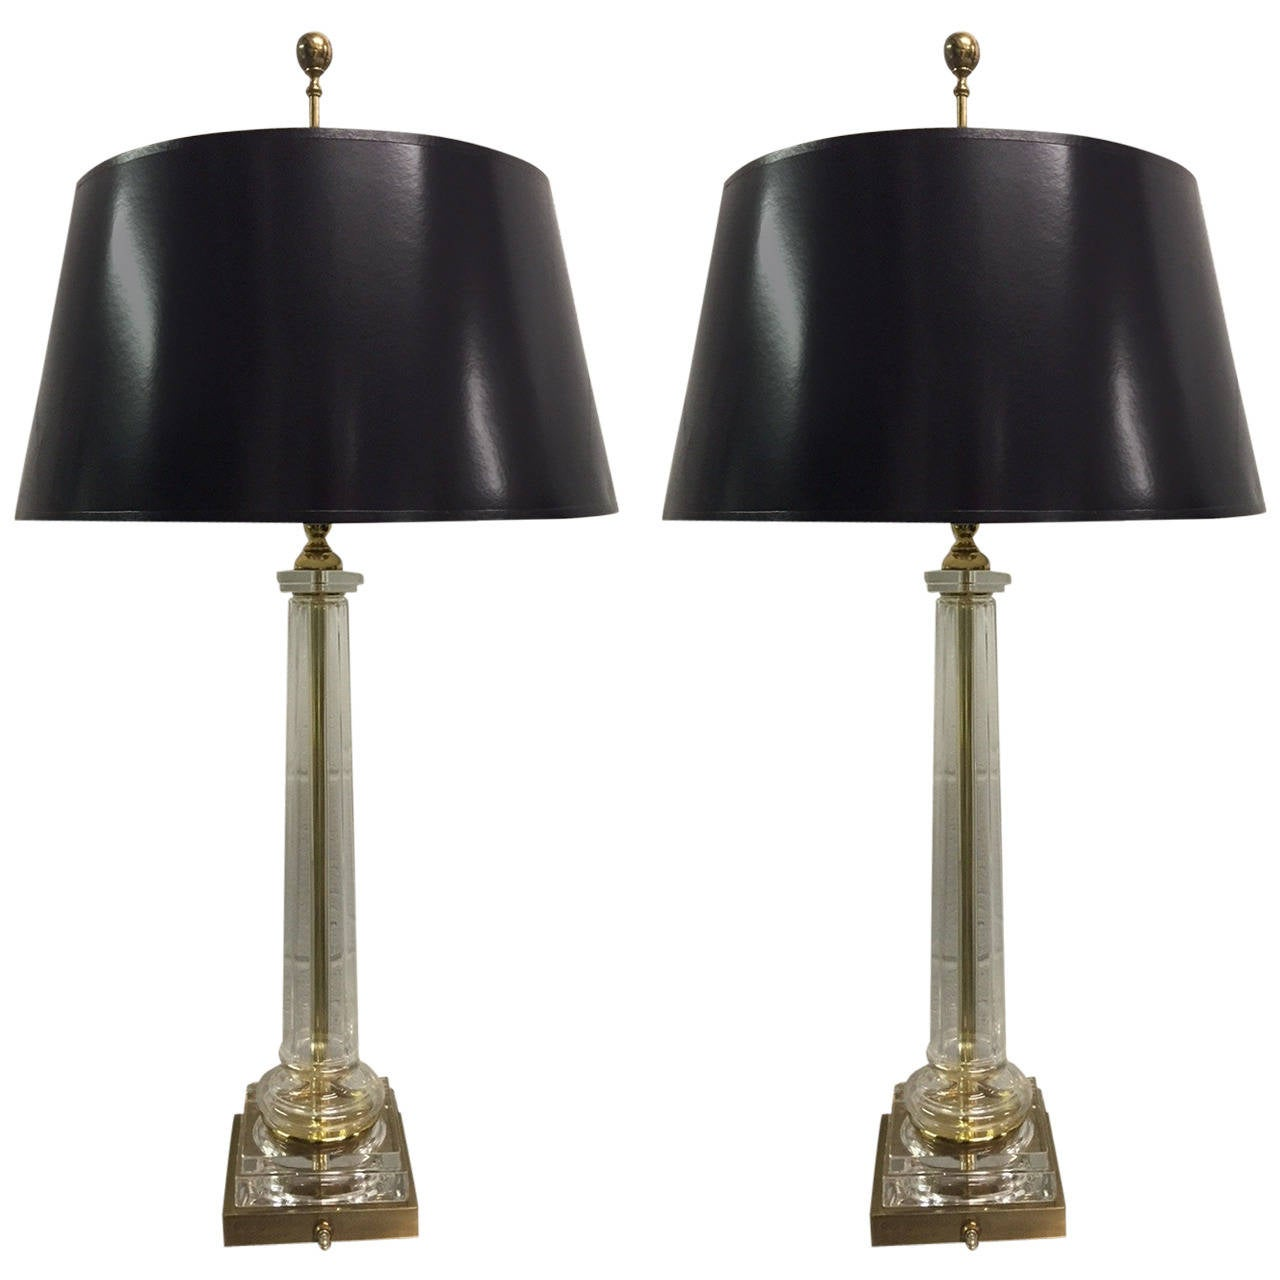 Pair of Neoclassical Style Glass and Brass Lamps by Chapman